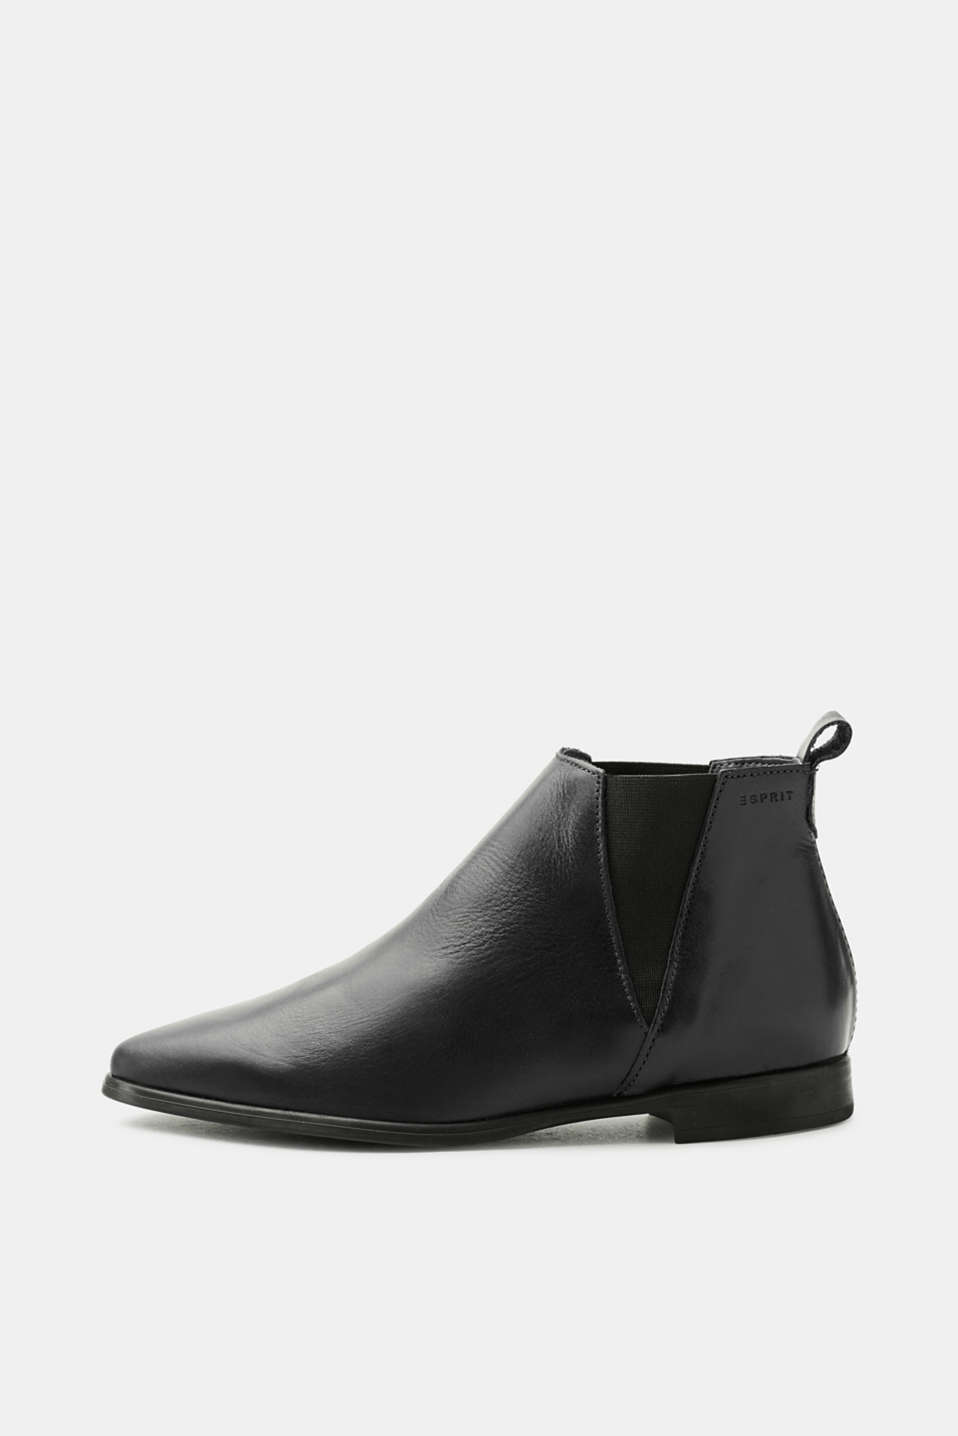 Esprit - Bottines pointues Chelsea en cuir